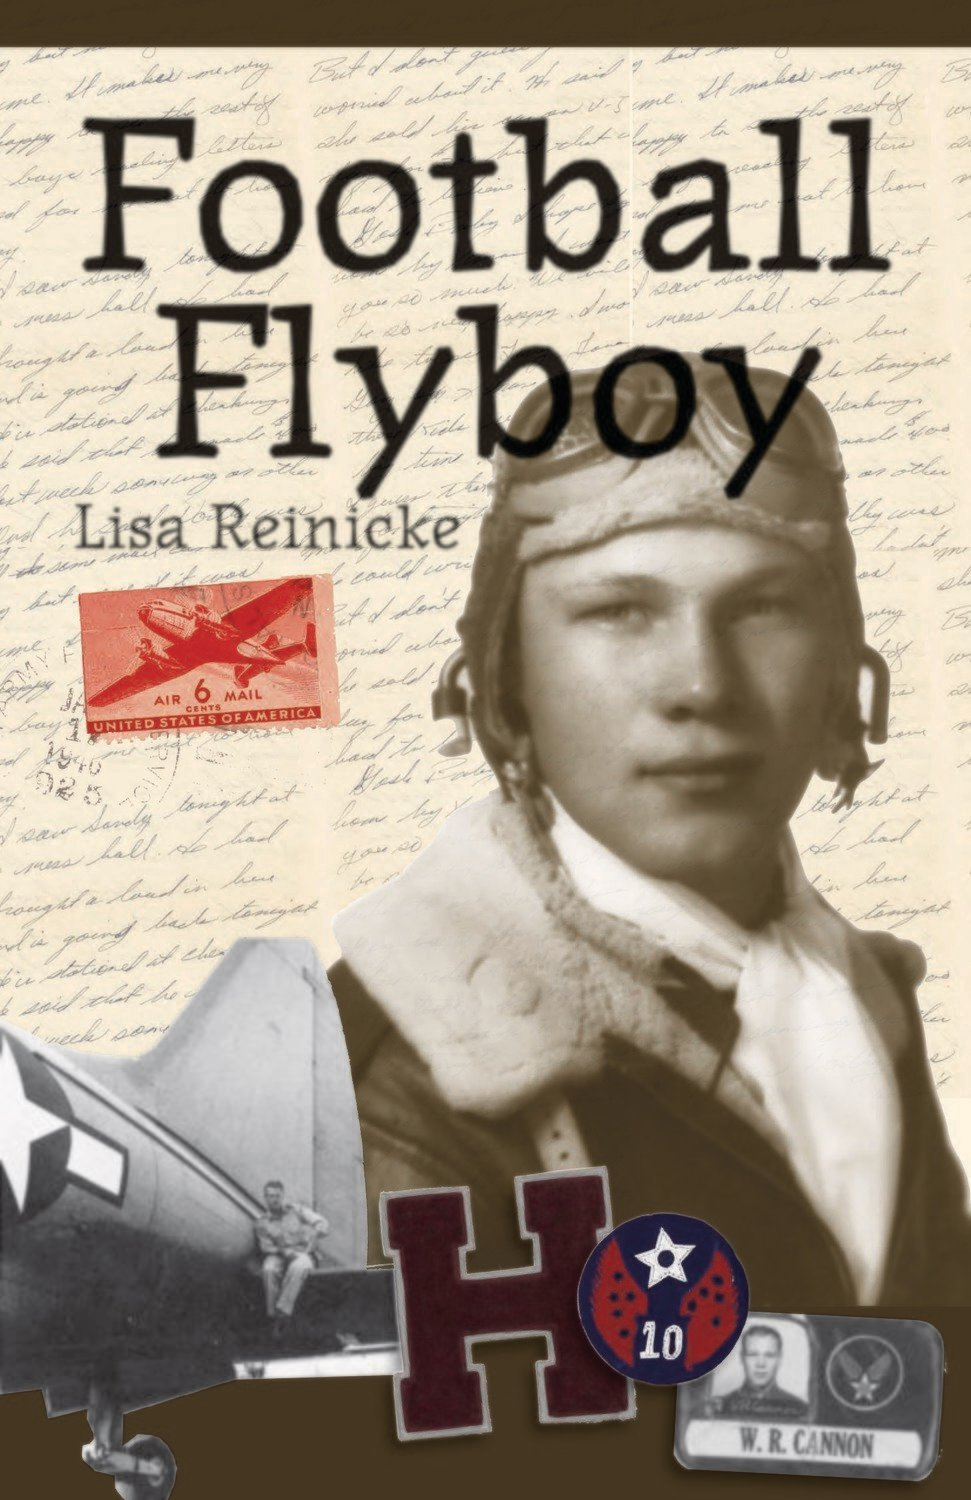 Football Flyboy - Military